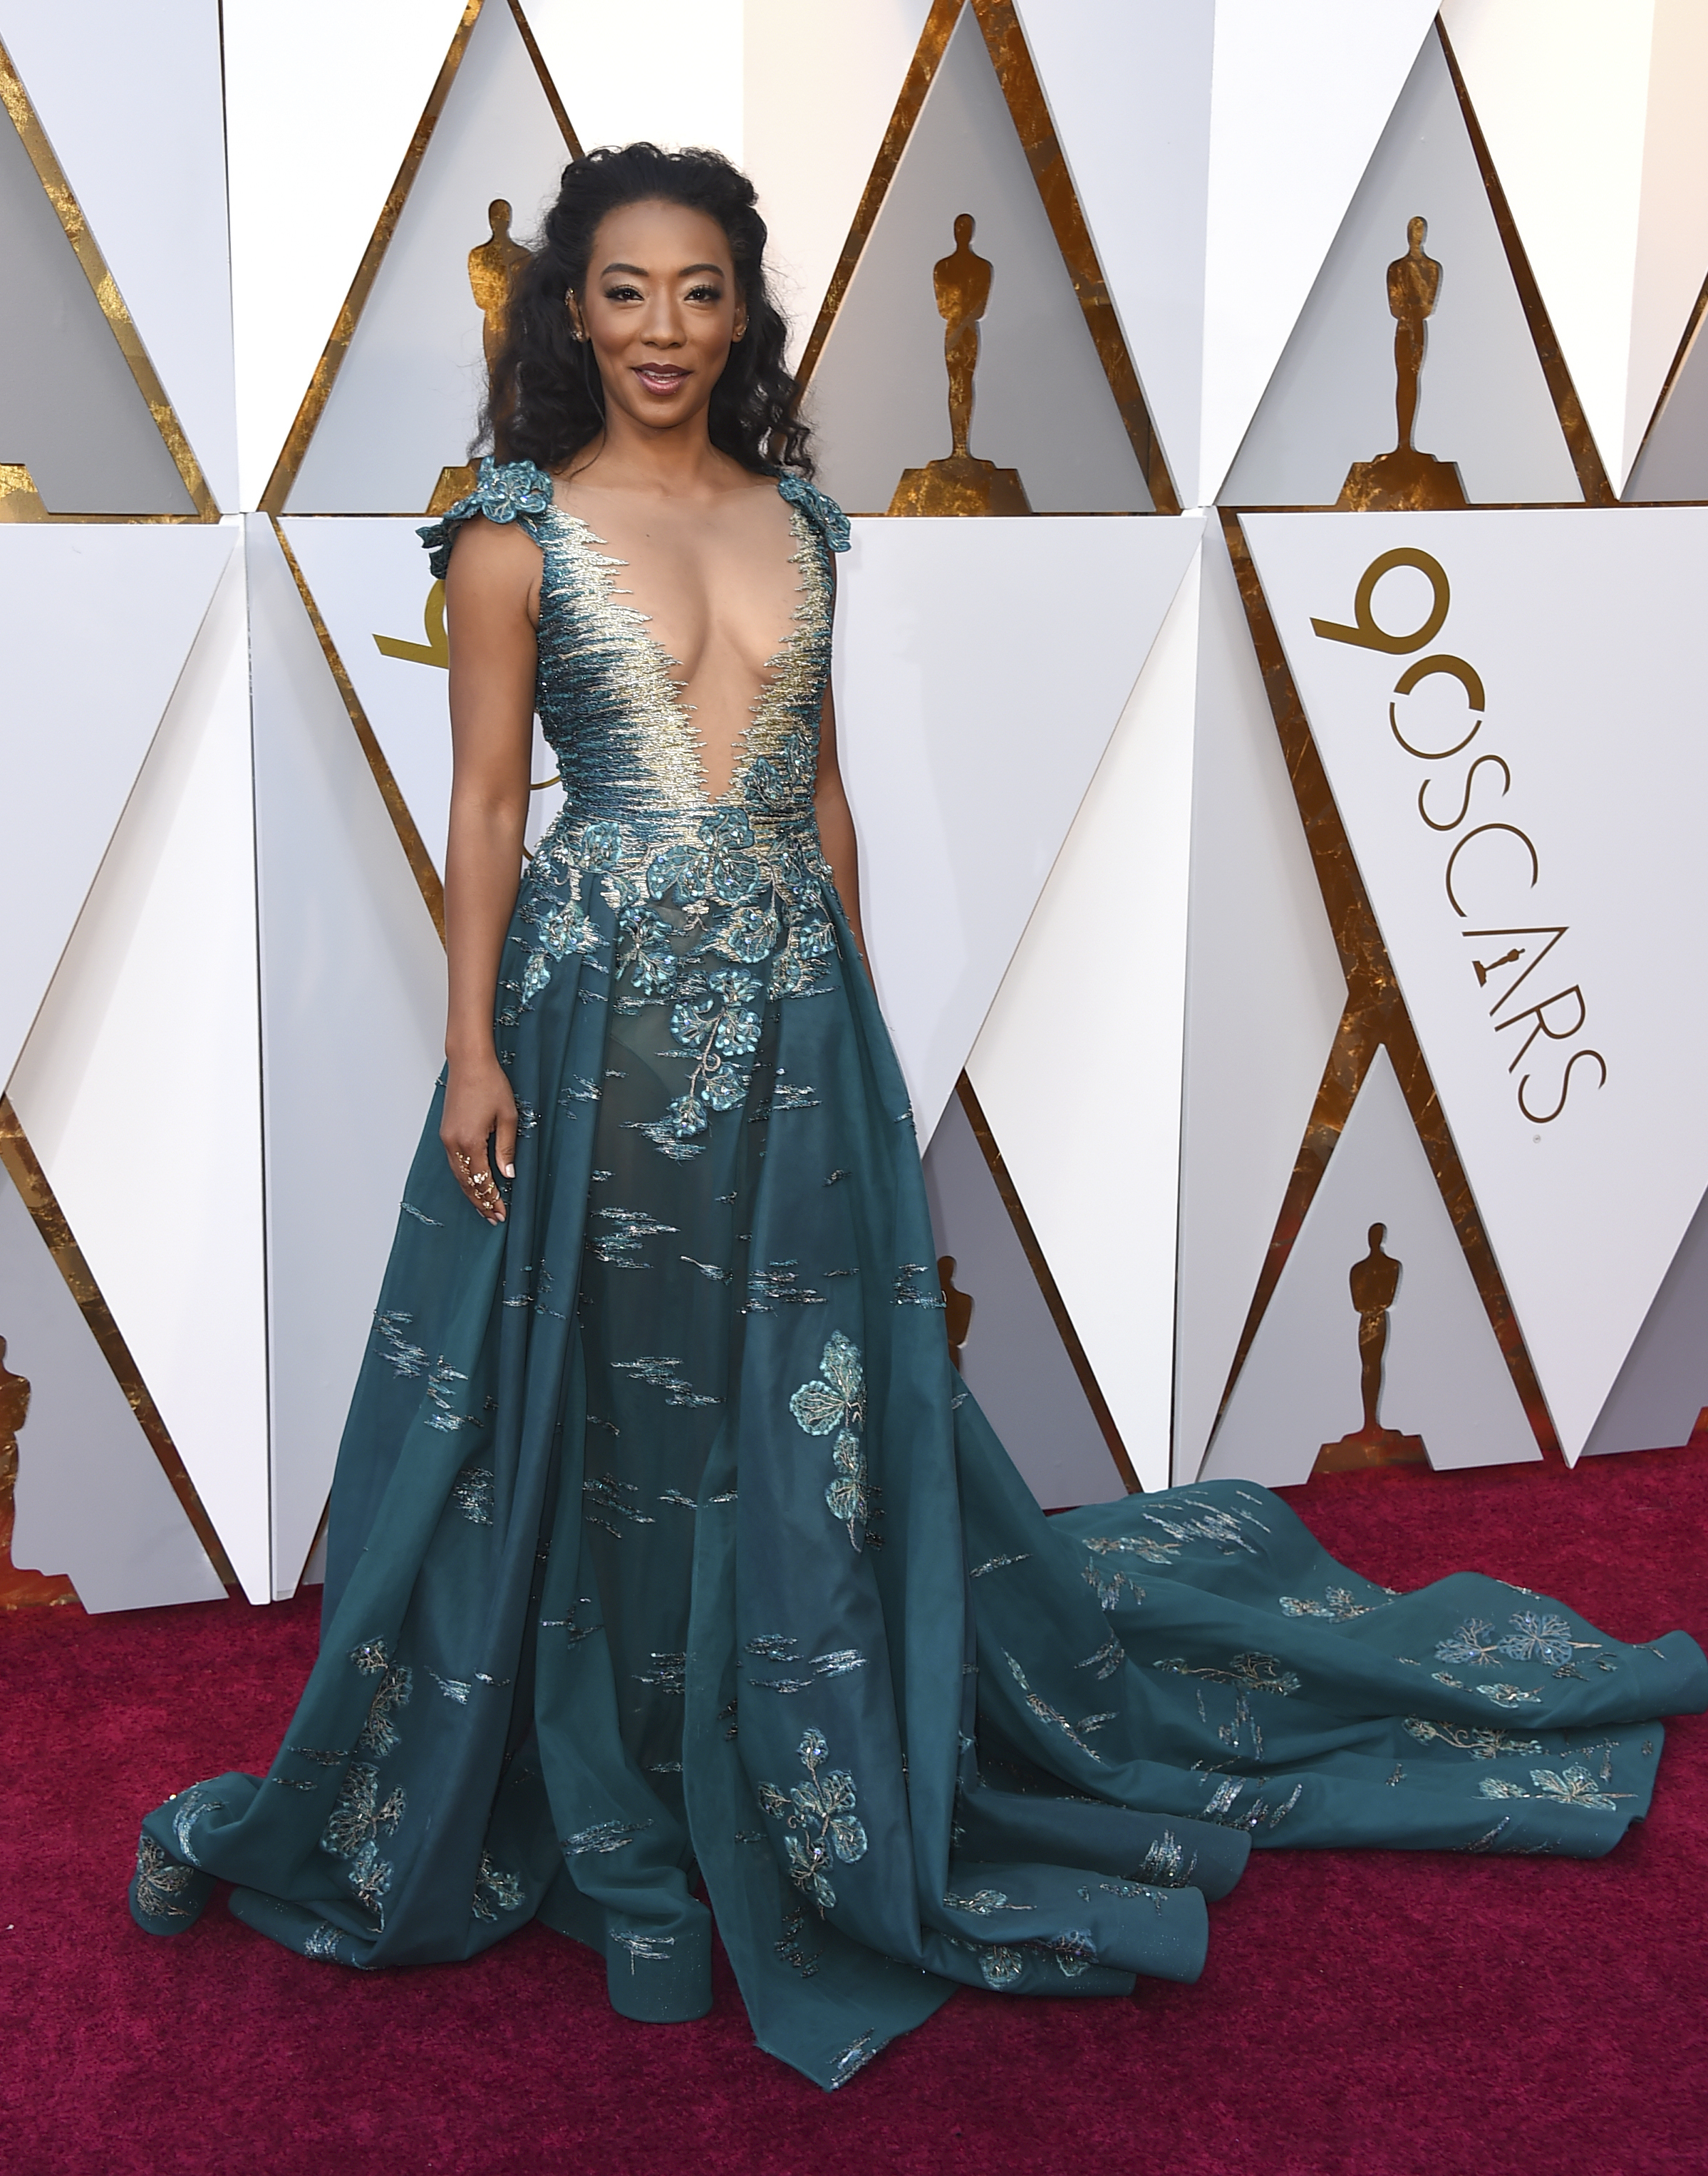 "<div class=""meta image-caption""><div class=""origin-logo origin-image none""><span>none</span></div><span class=""caption-text"">Betty Gabriel of ''Get Out'' arrives at the Oscars on Sunday, March 4, 2018, at the Dolby Theatre in Los Angeles. (Jordan Strauss/Invision/AP)</span></div>"